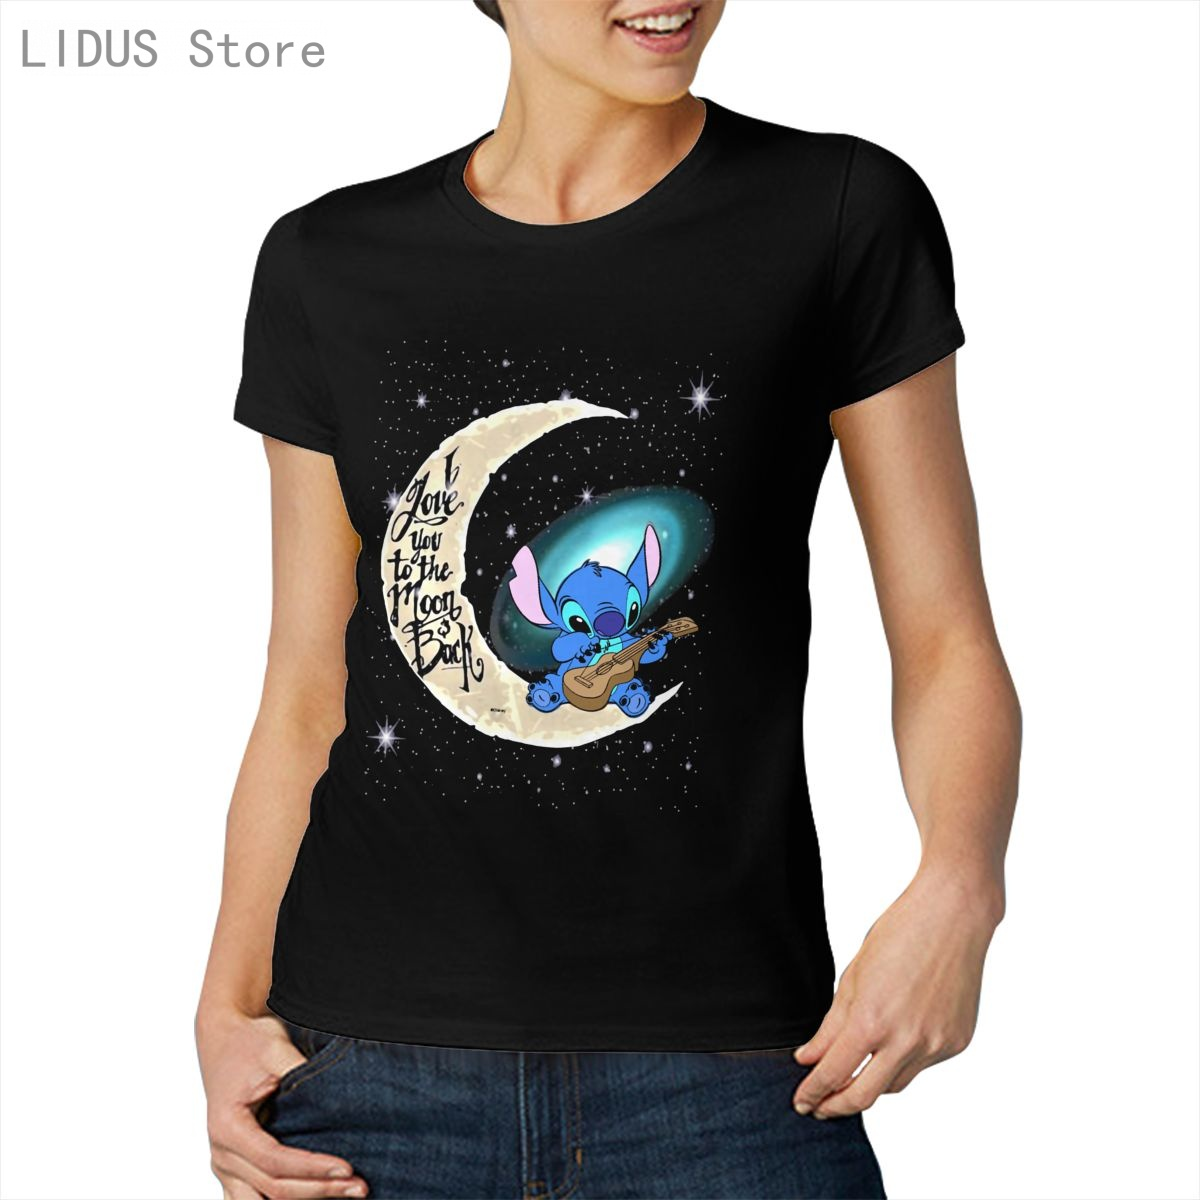 Fashion Graphic T-shirt Cartoon Anime Stitch I Love You To The Moon And Back Casual Women O-neck 100% Cotton T shirt Tees Top